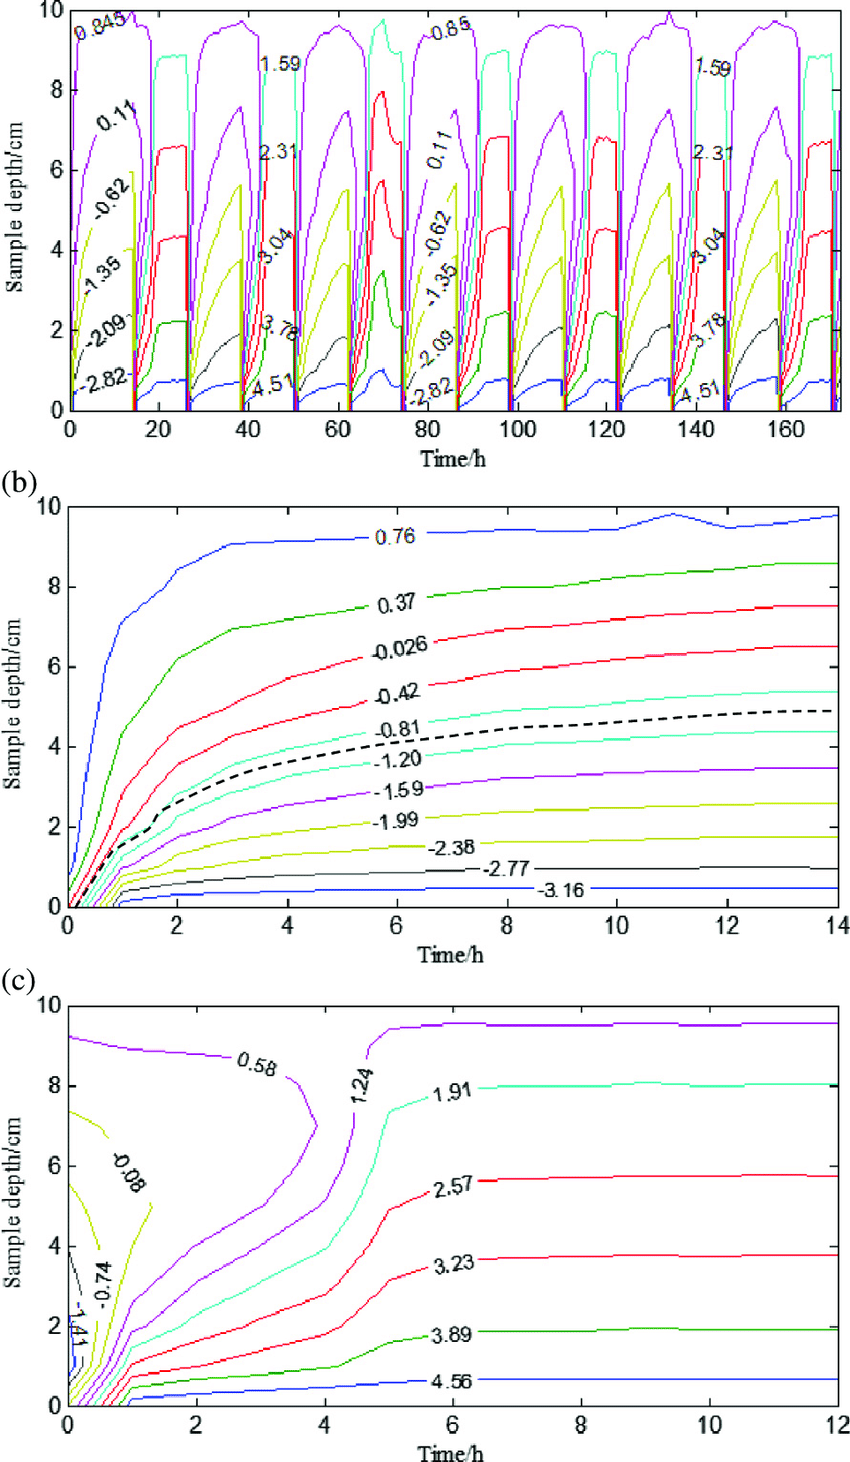 medium resolution of isothermal diagram of the soil sample l0c2 a isothermal diagram for 7 freeze